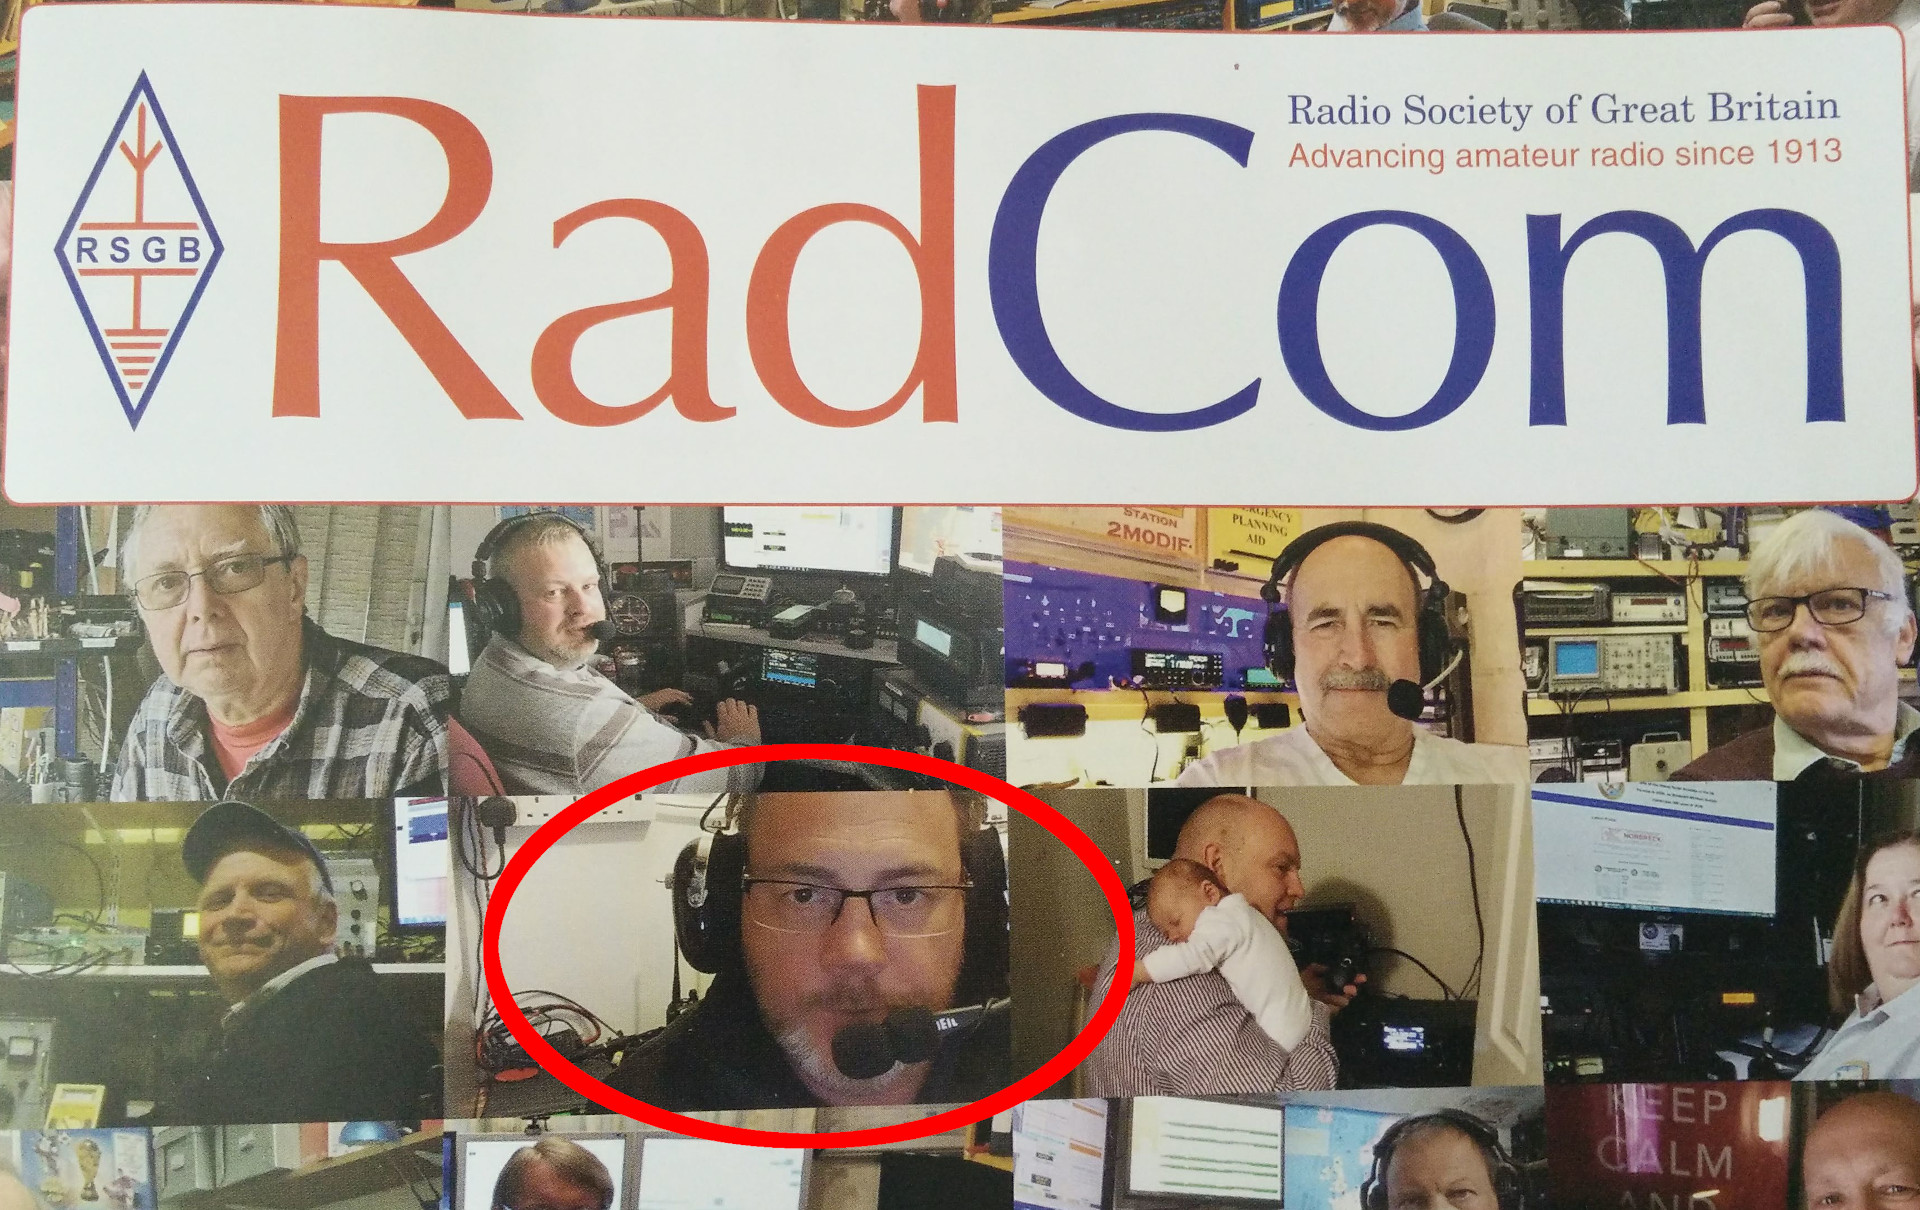 Radcom June 2020 Front Cover (Zoomed)